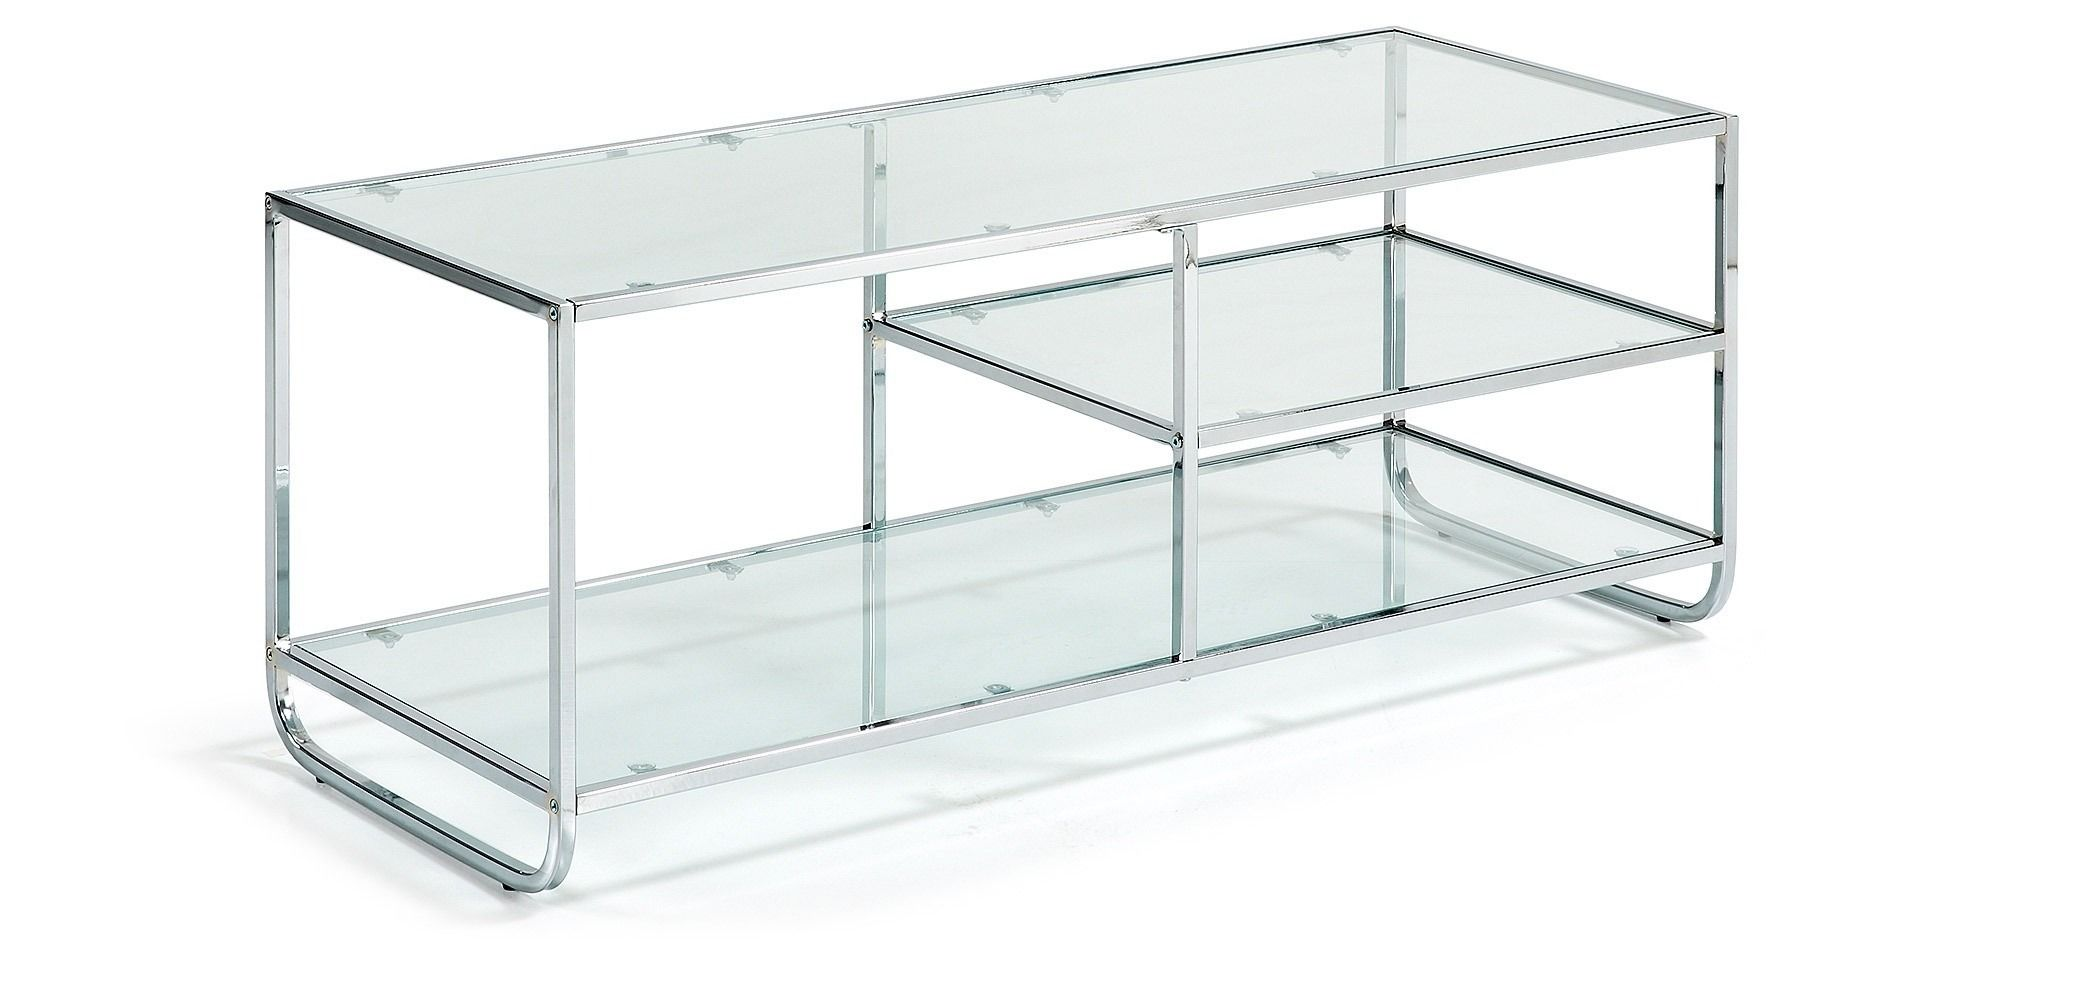 Maison Tv Bord Transparent Tv Bord Tv Table Pinterest Tv  # Table Tv D'Angle En Verre Design Transparent